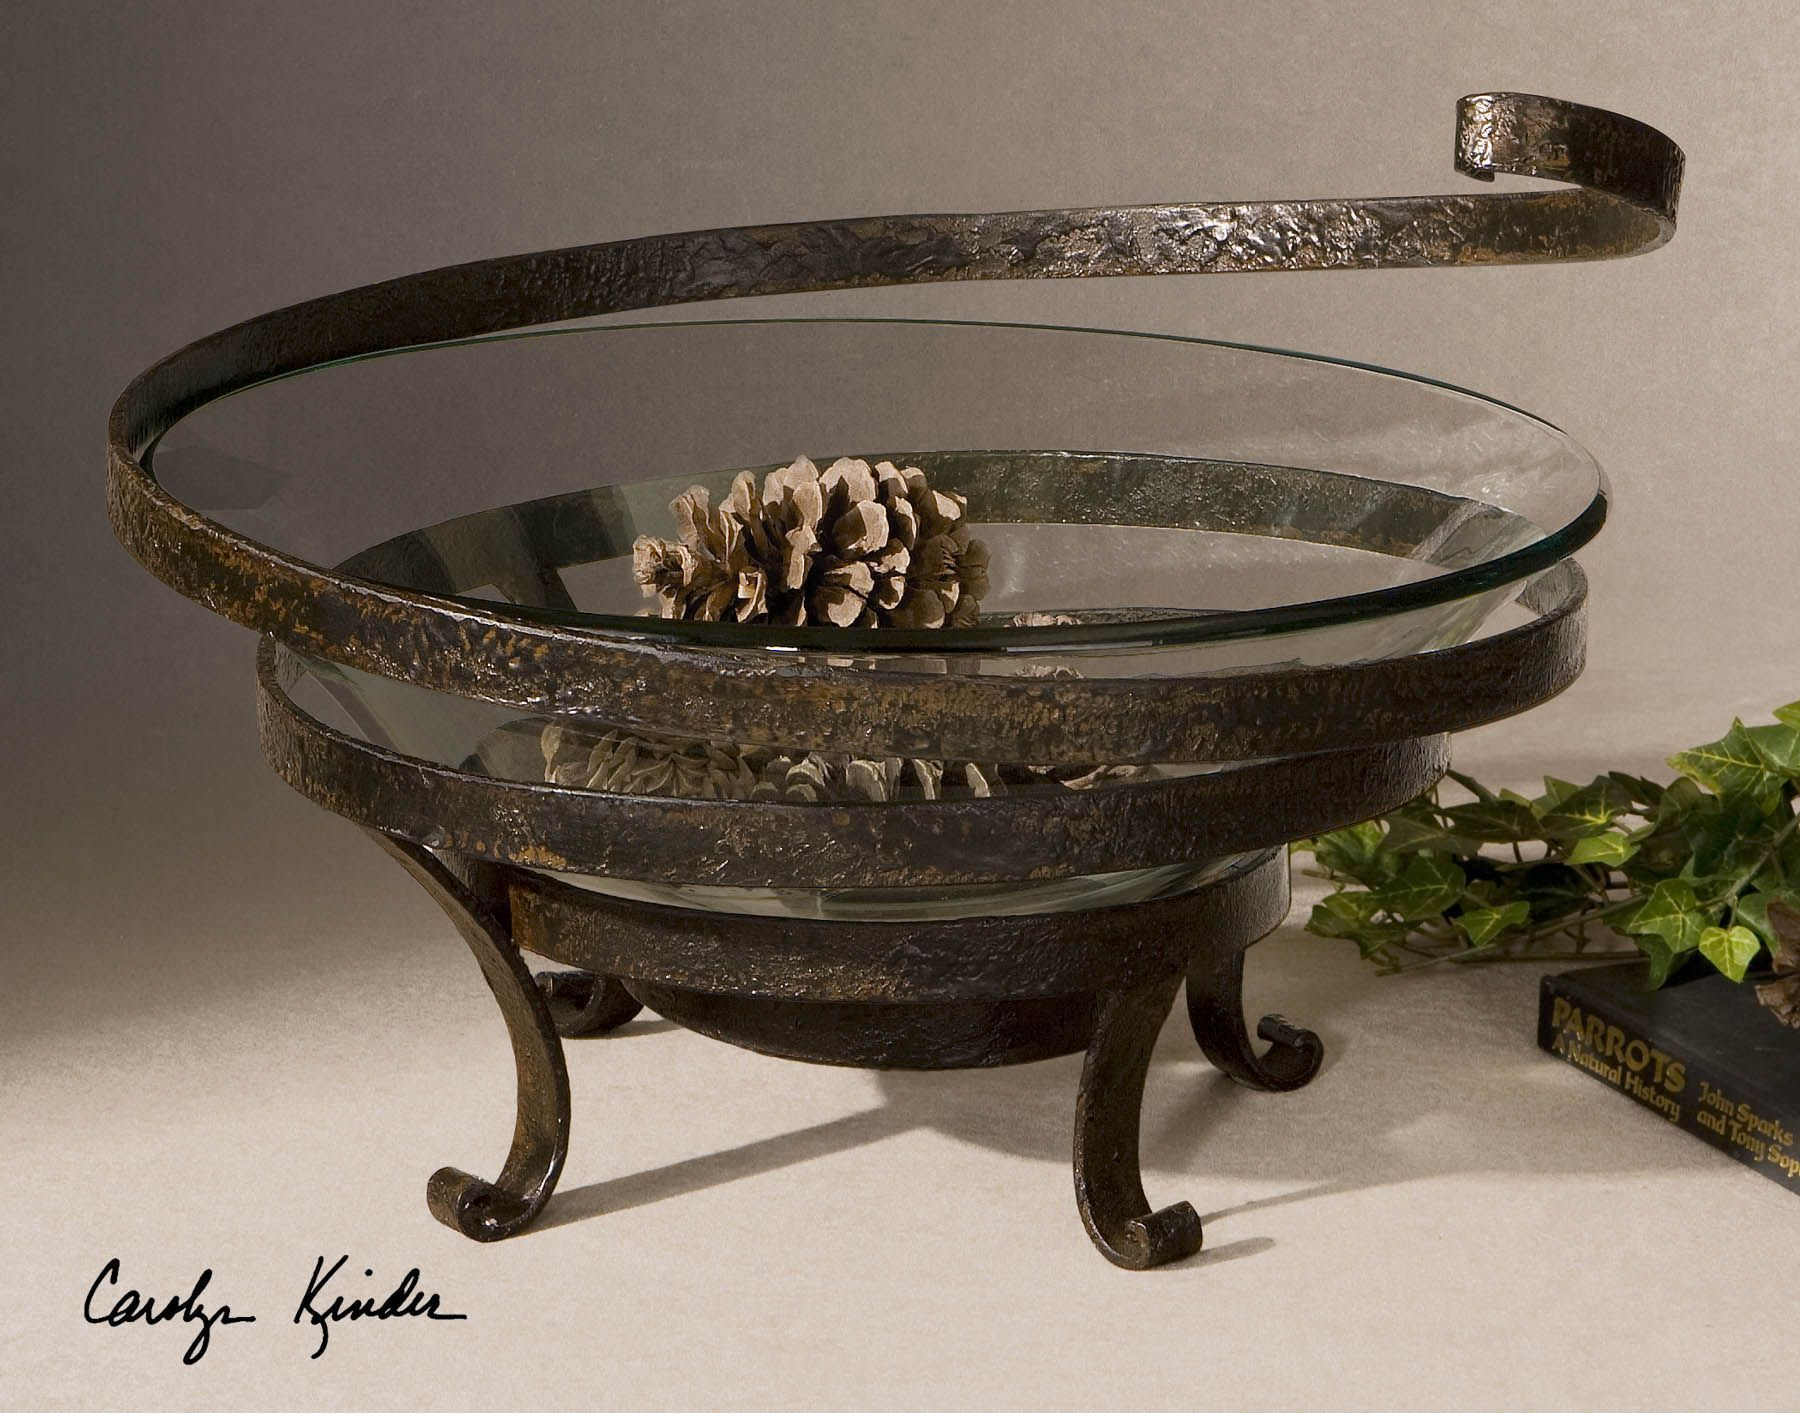 Uttermost Teneh Lattice Weave Design Bowl in Copper Bronze